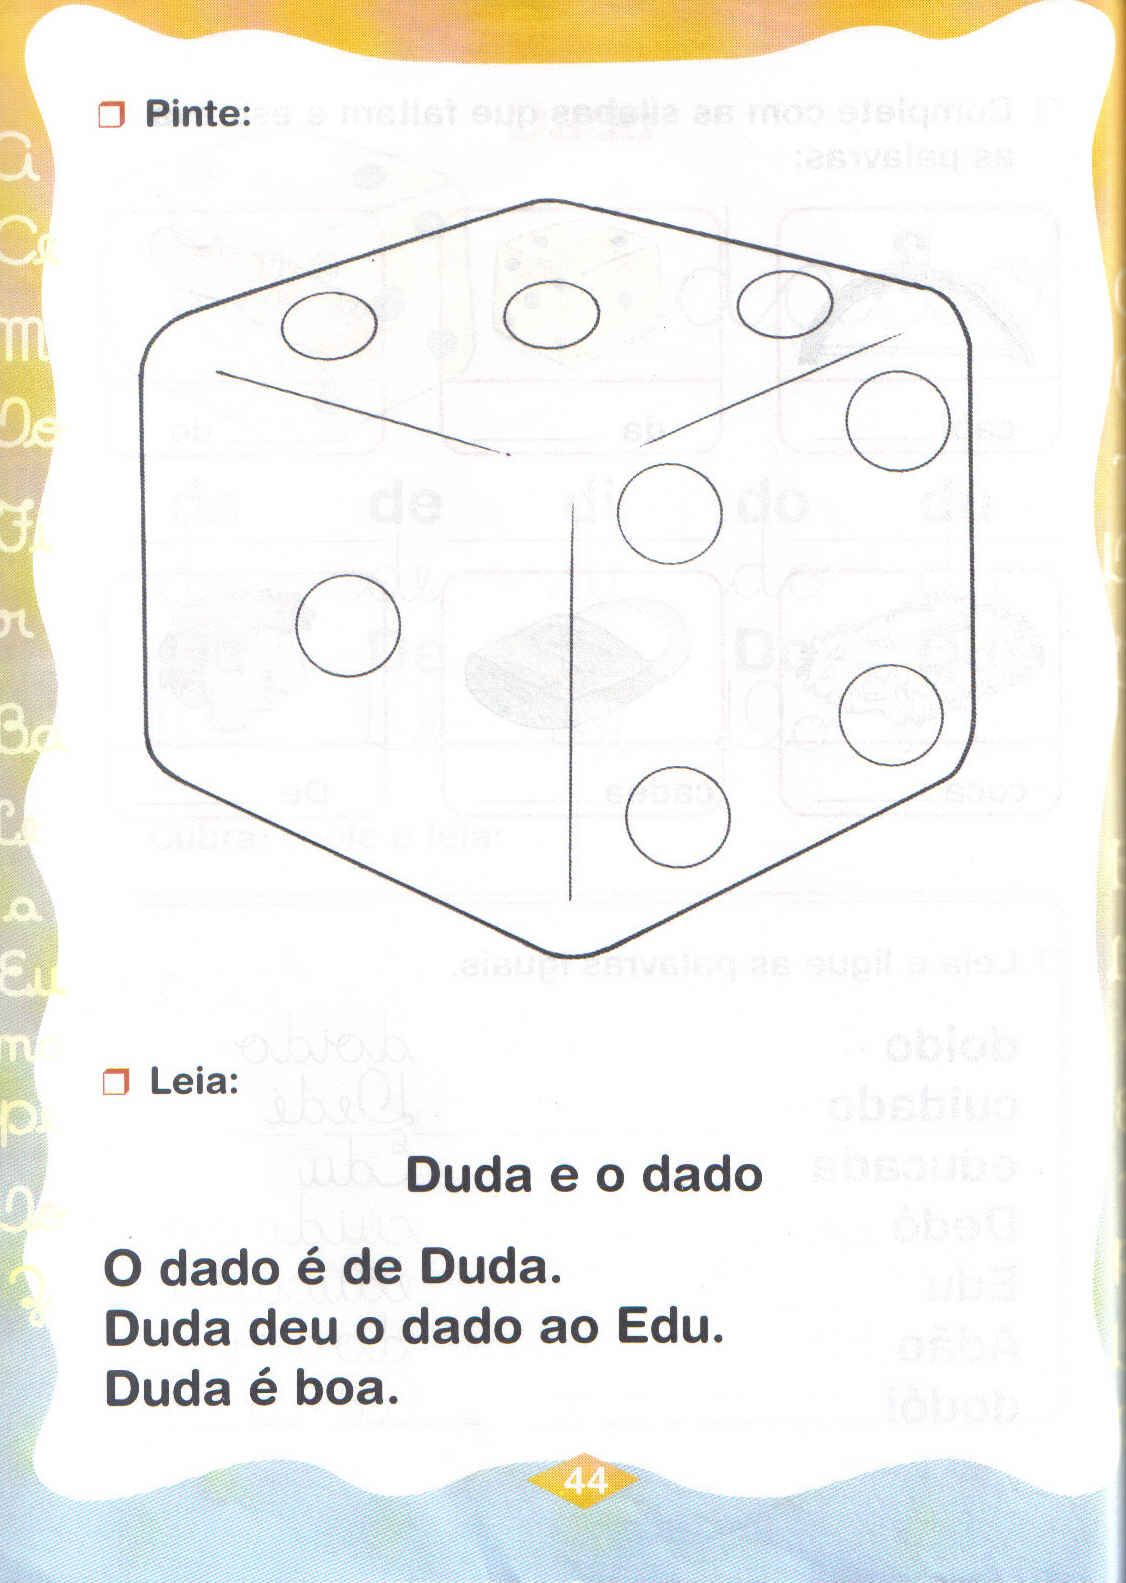 exercicios com da de di do du